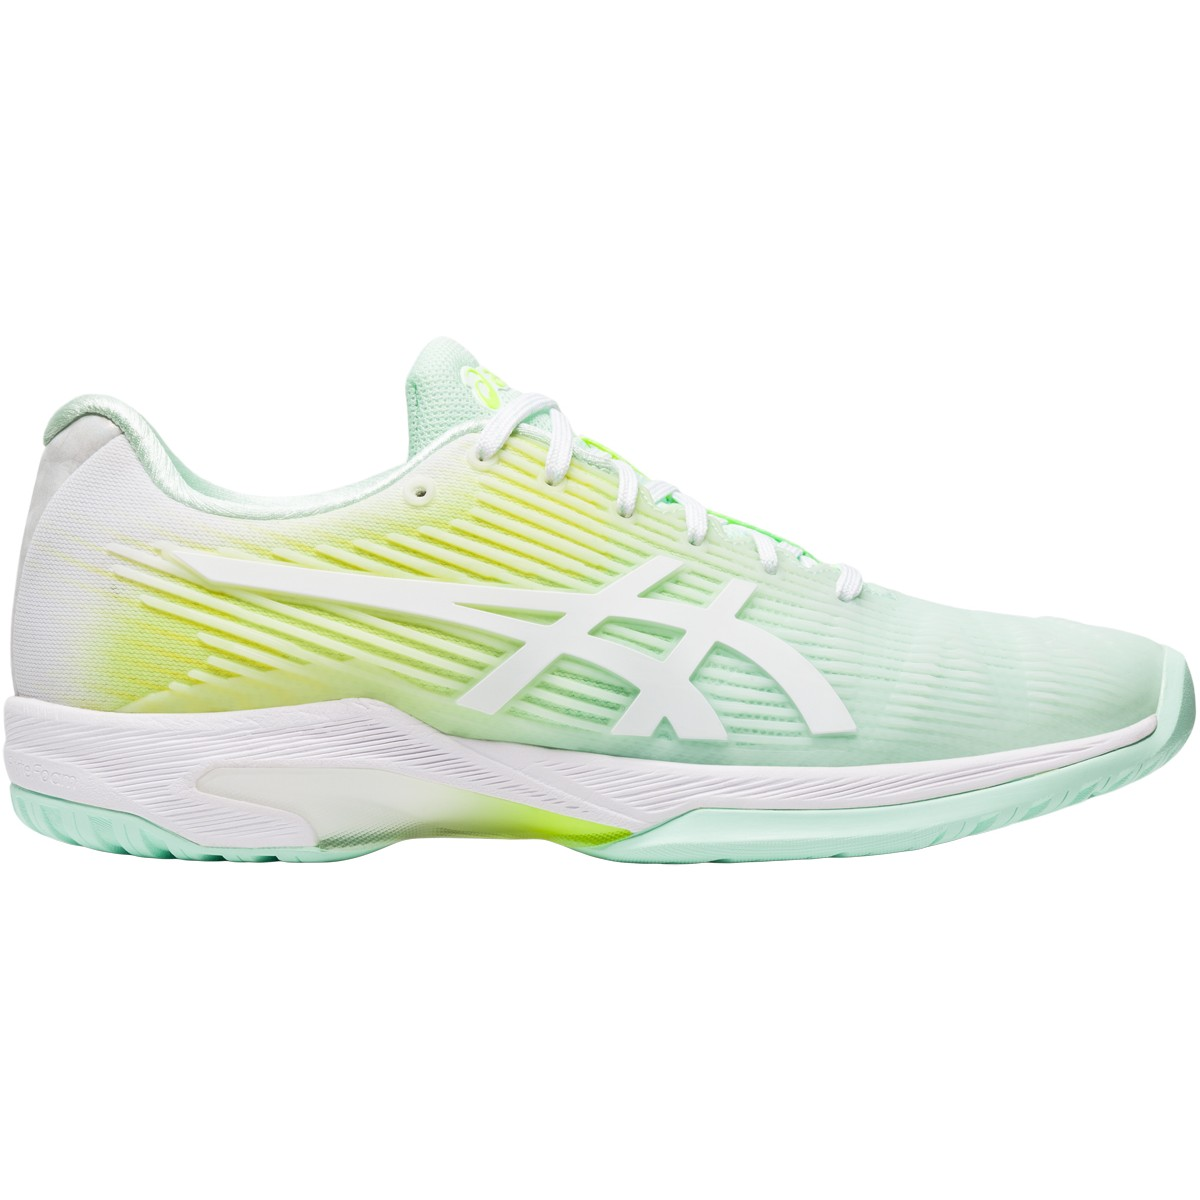 CHAUSSURES ASICS FEMME SOLUTION SPEED FF MODERN TOKYO TOUTES SURFACES